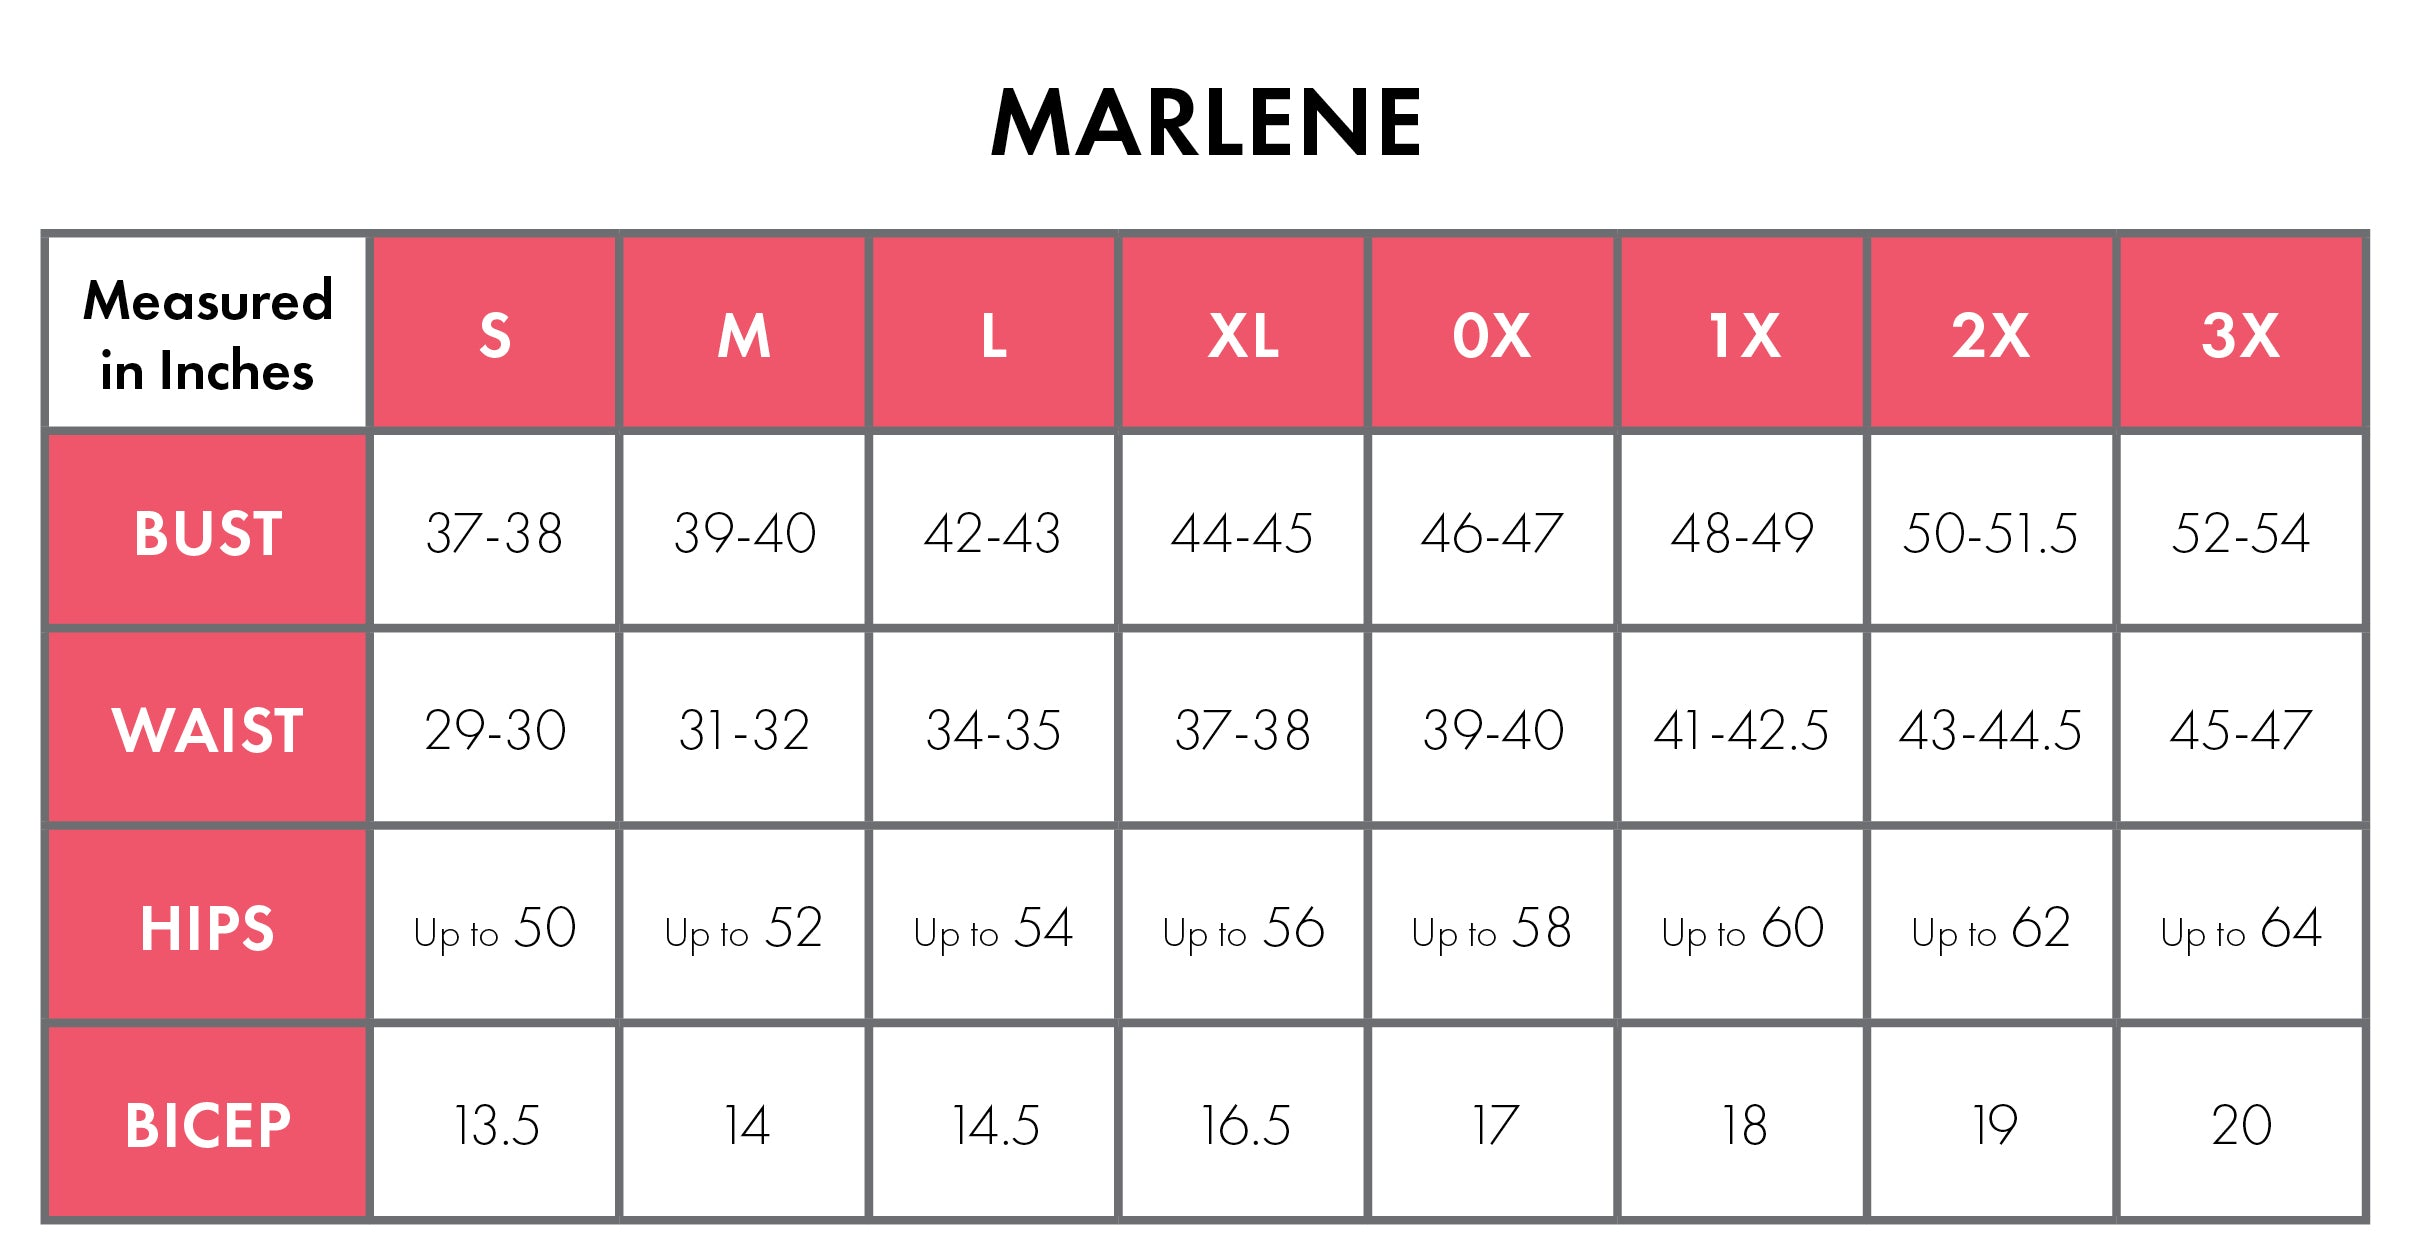 Size Chart For Marlene 100% Cotton